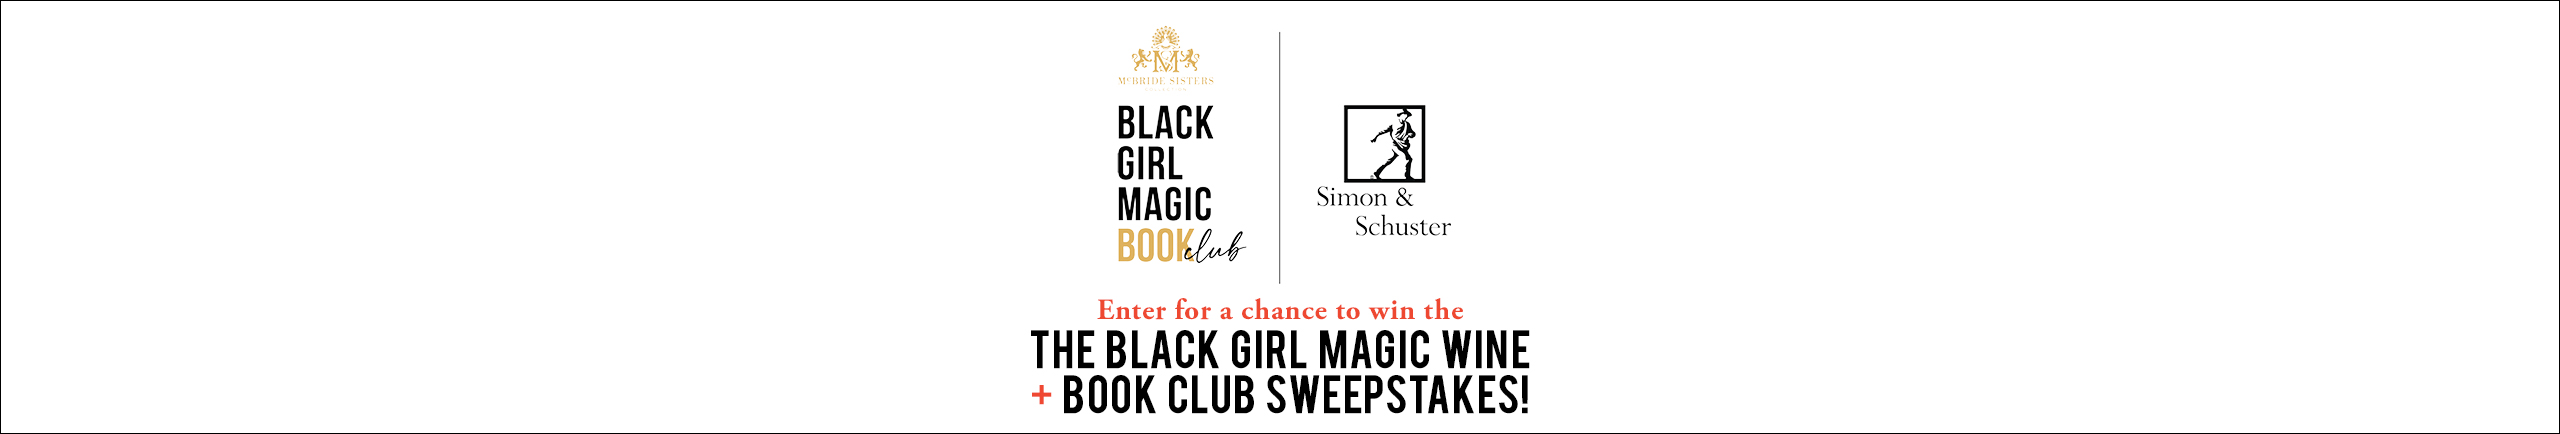 Enter for a chance to win the Black Girl Magic Wine + Book Club Sweepstakes!